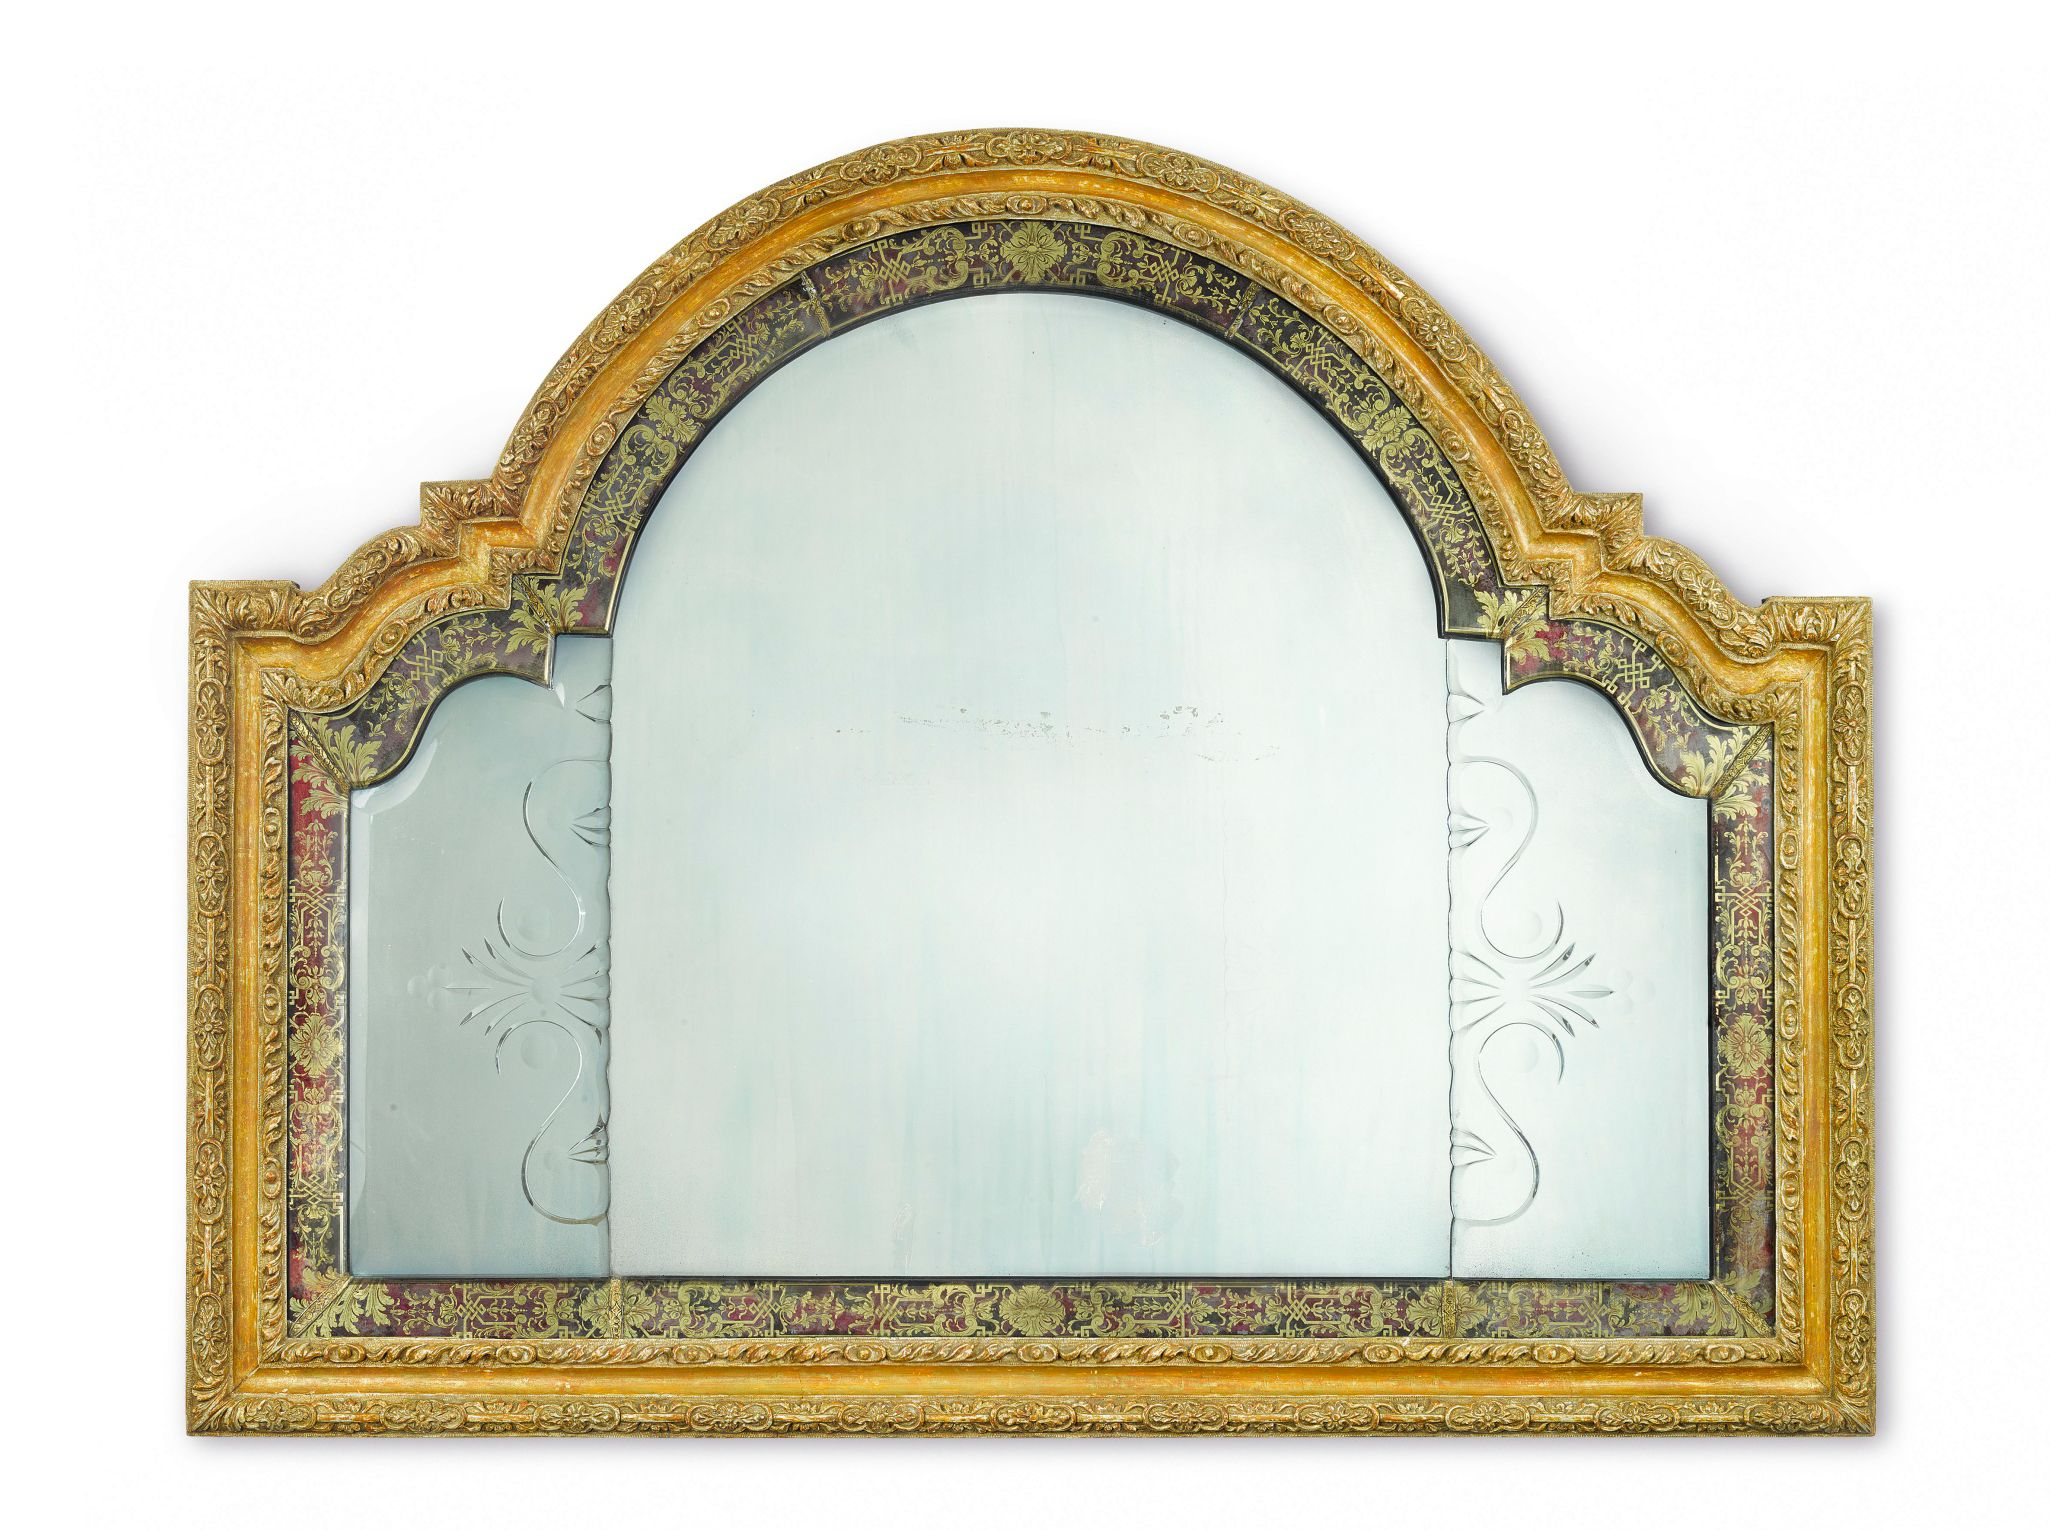 A QUEEN ANNE CARVED GILTWOOD AND VERRE ÉGLOMISÉ OVERMANTEL MIRROR ...